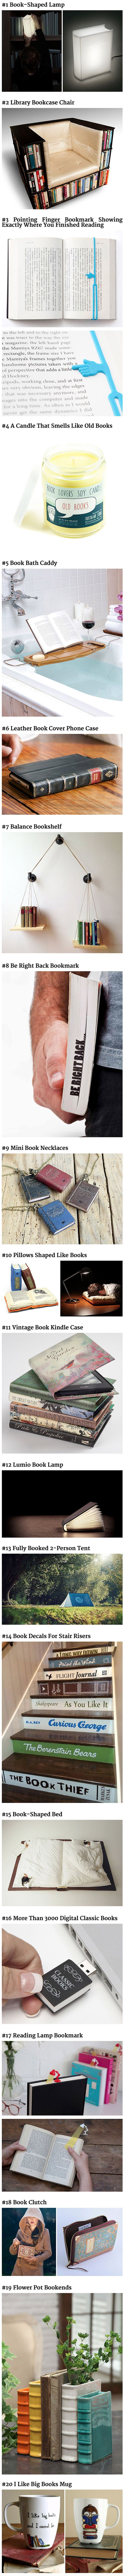 Here are some cool items that book fanatics would love.   Geeky ...